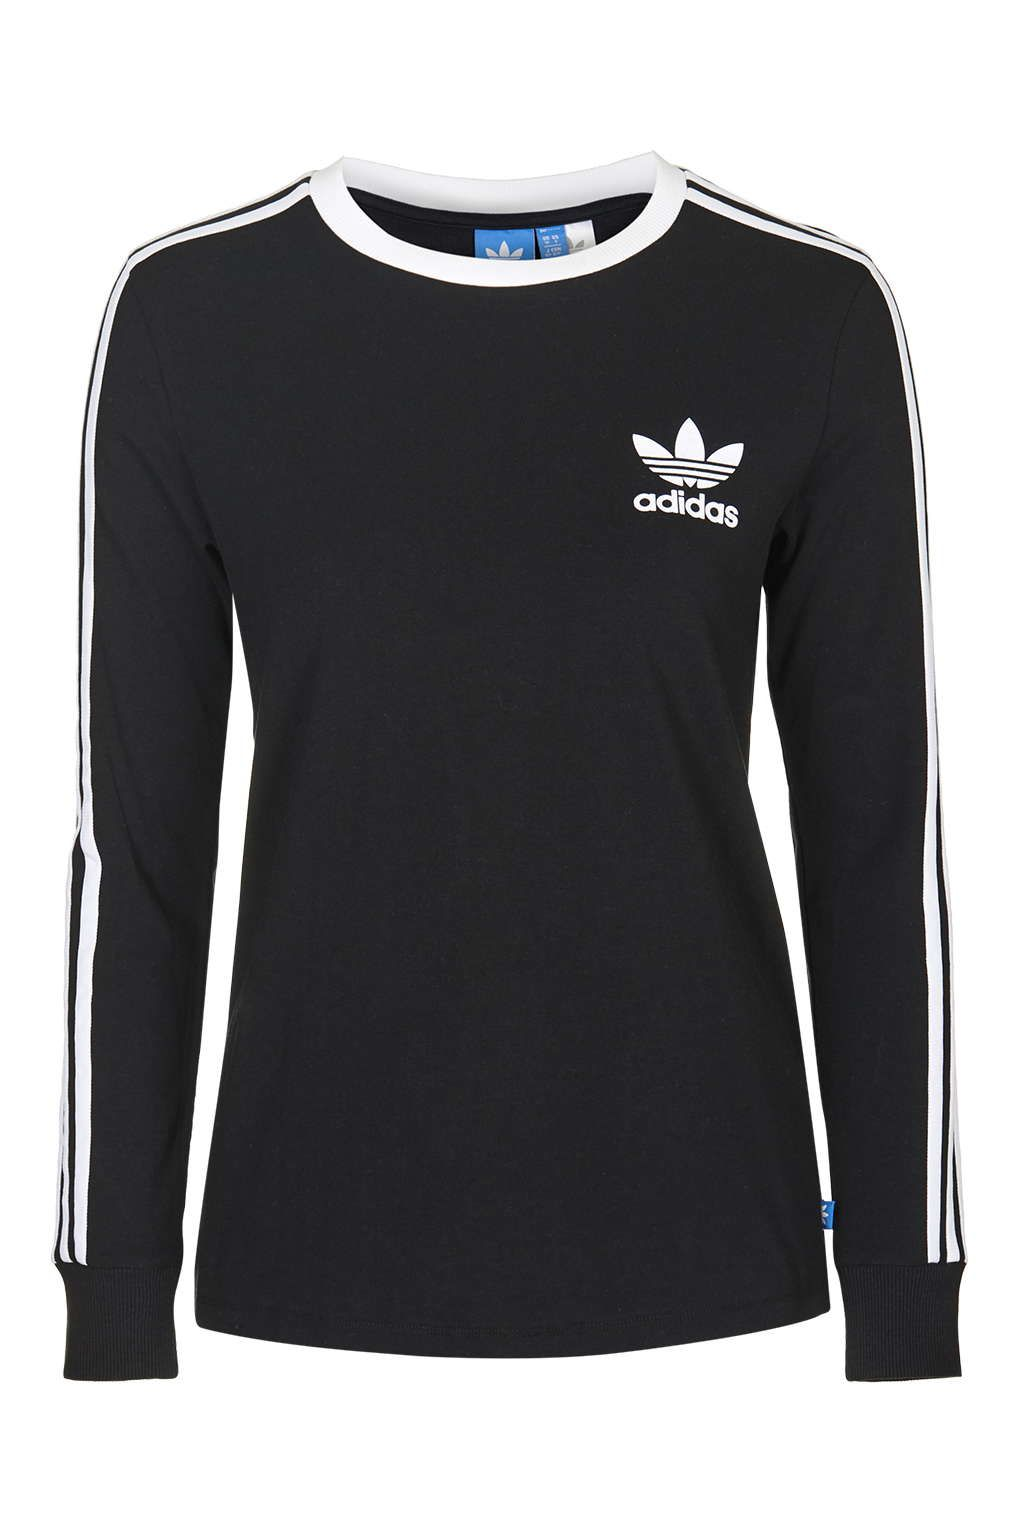 a1dc414baeab1 Photo 1 of Three Stripe Long Sleeve Top Adidas Originals